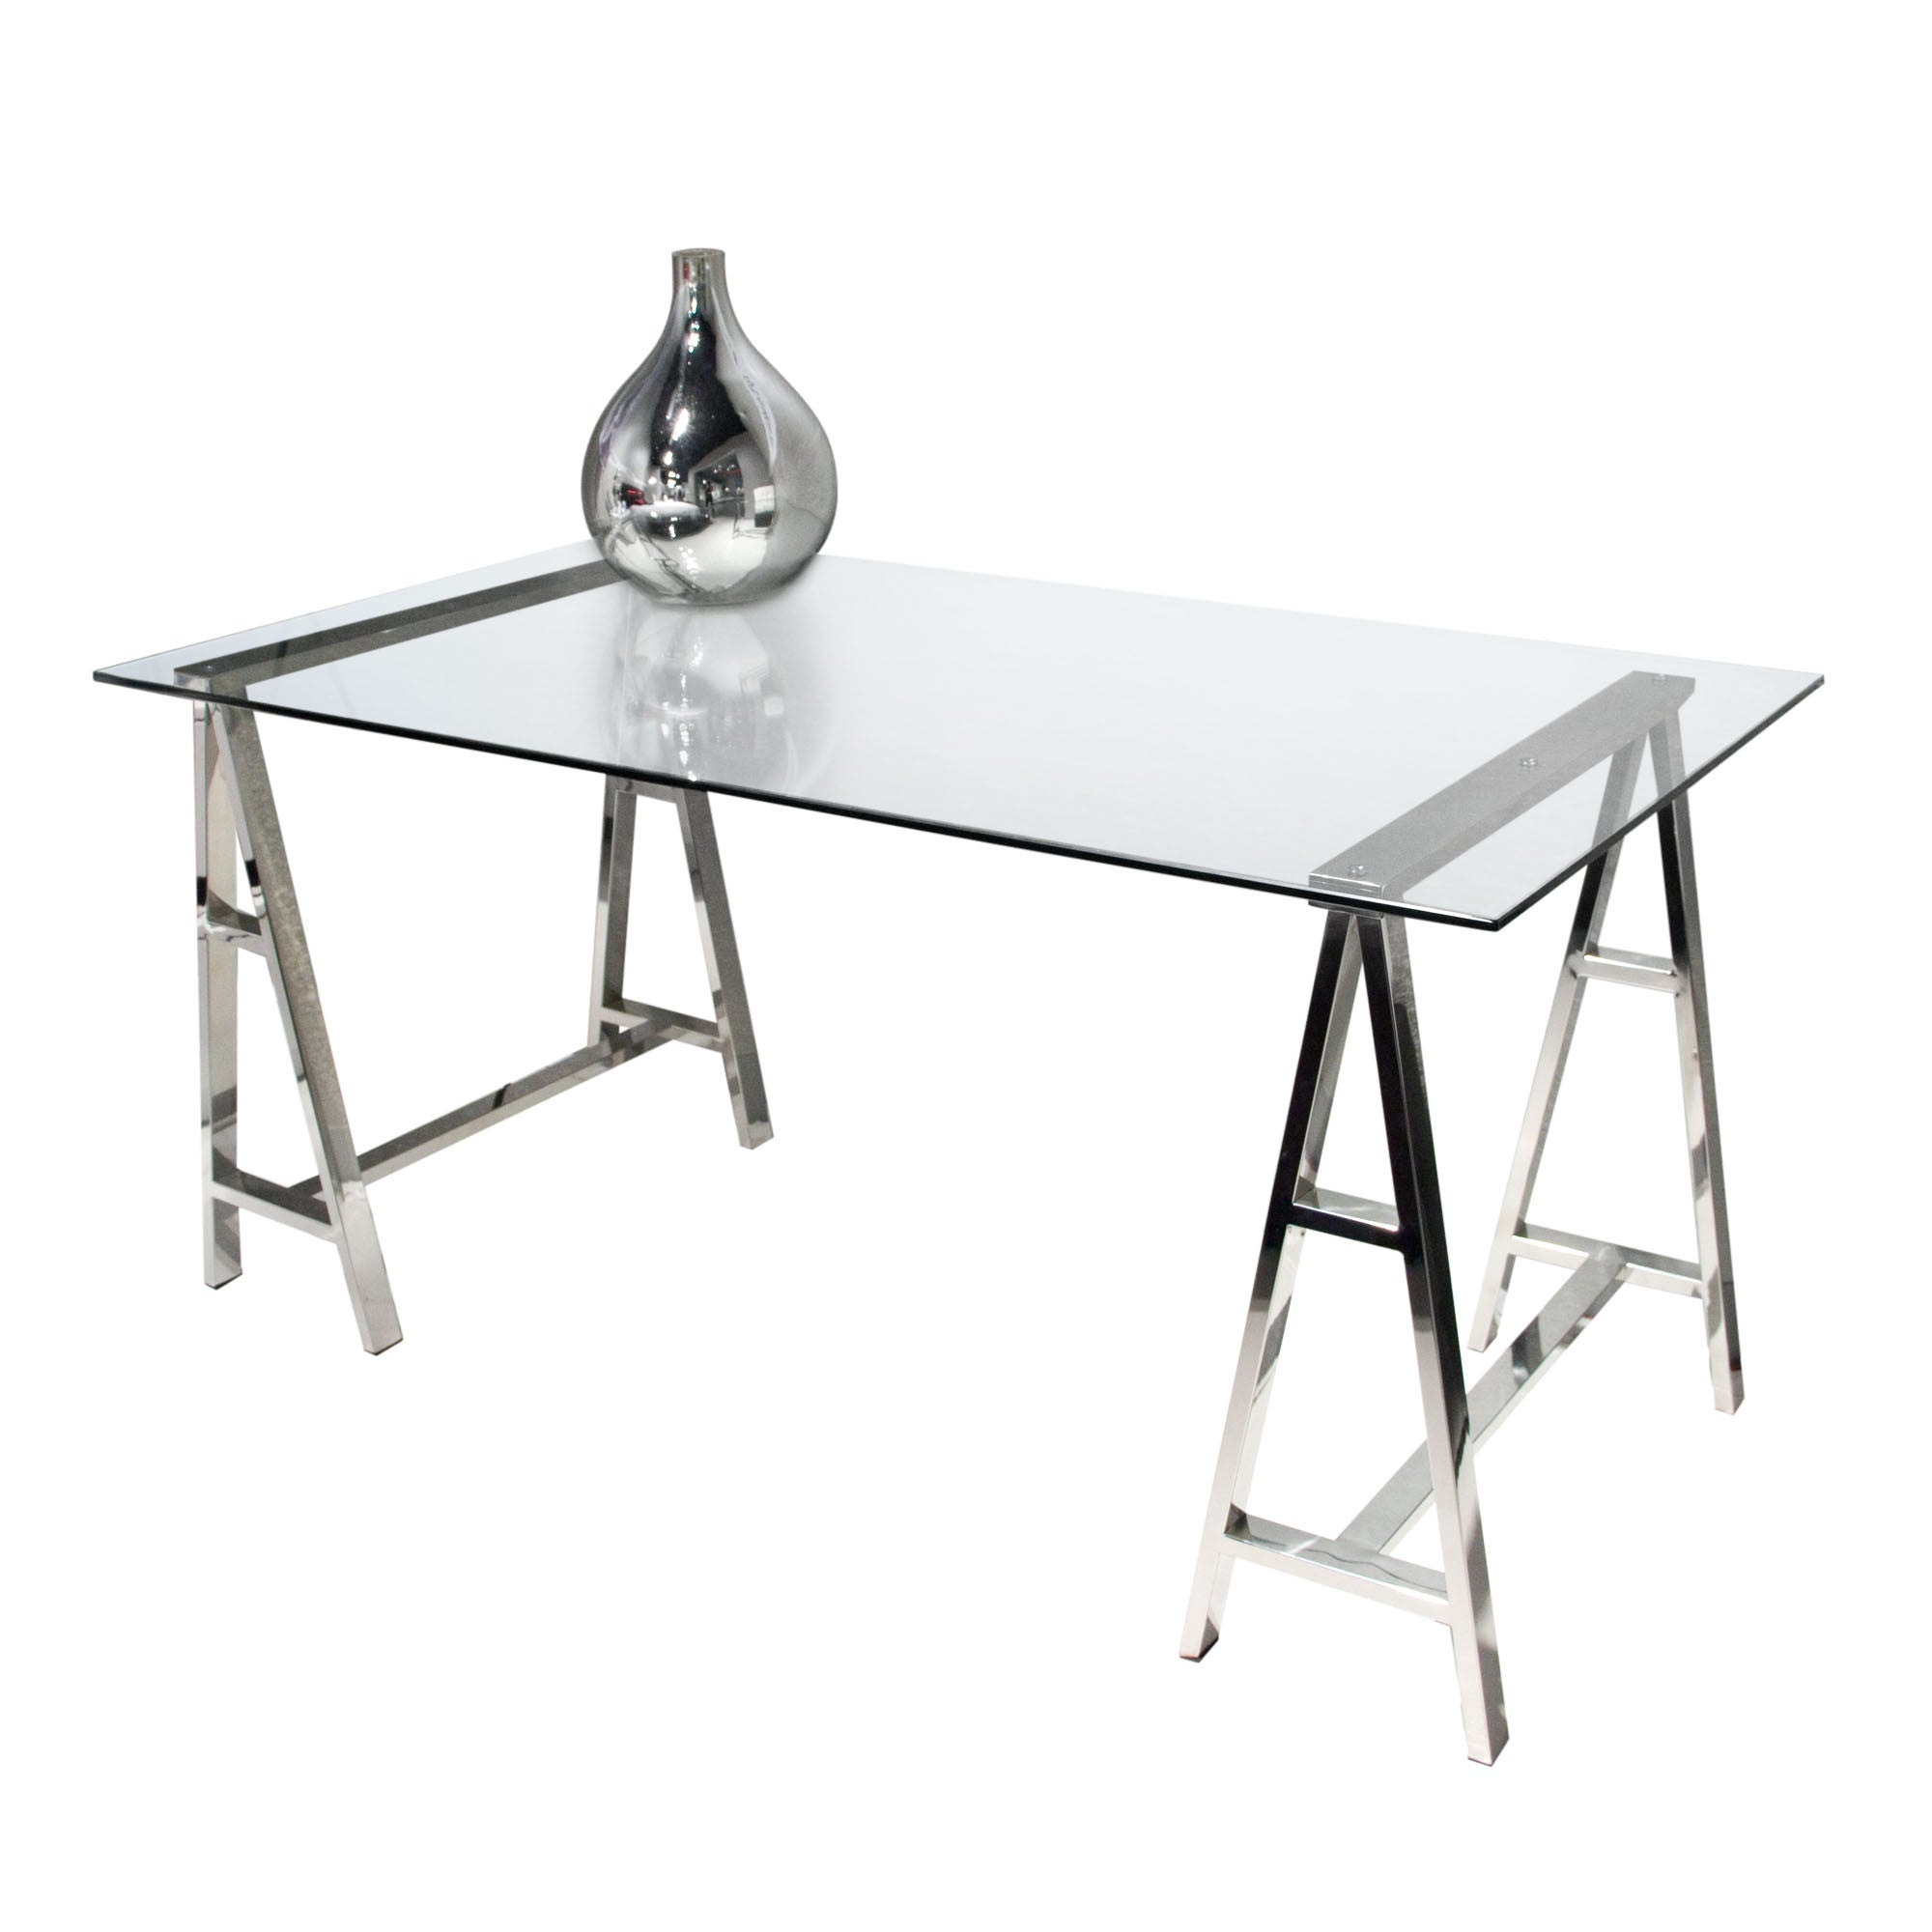 sawhorse style glass office desk with stainless steel base.  sawhorse style glass office desk with stainless steel base